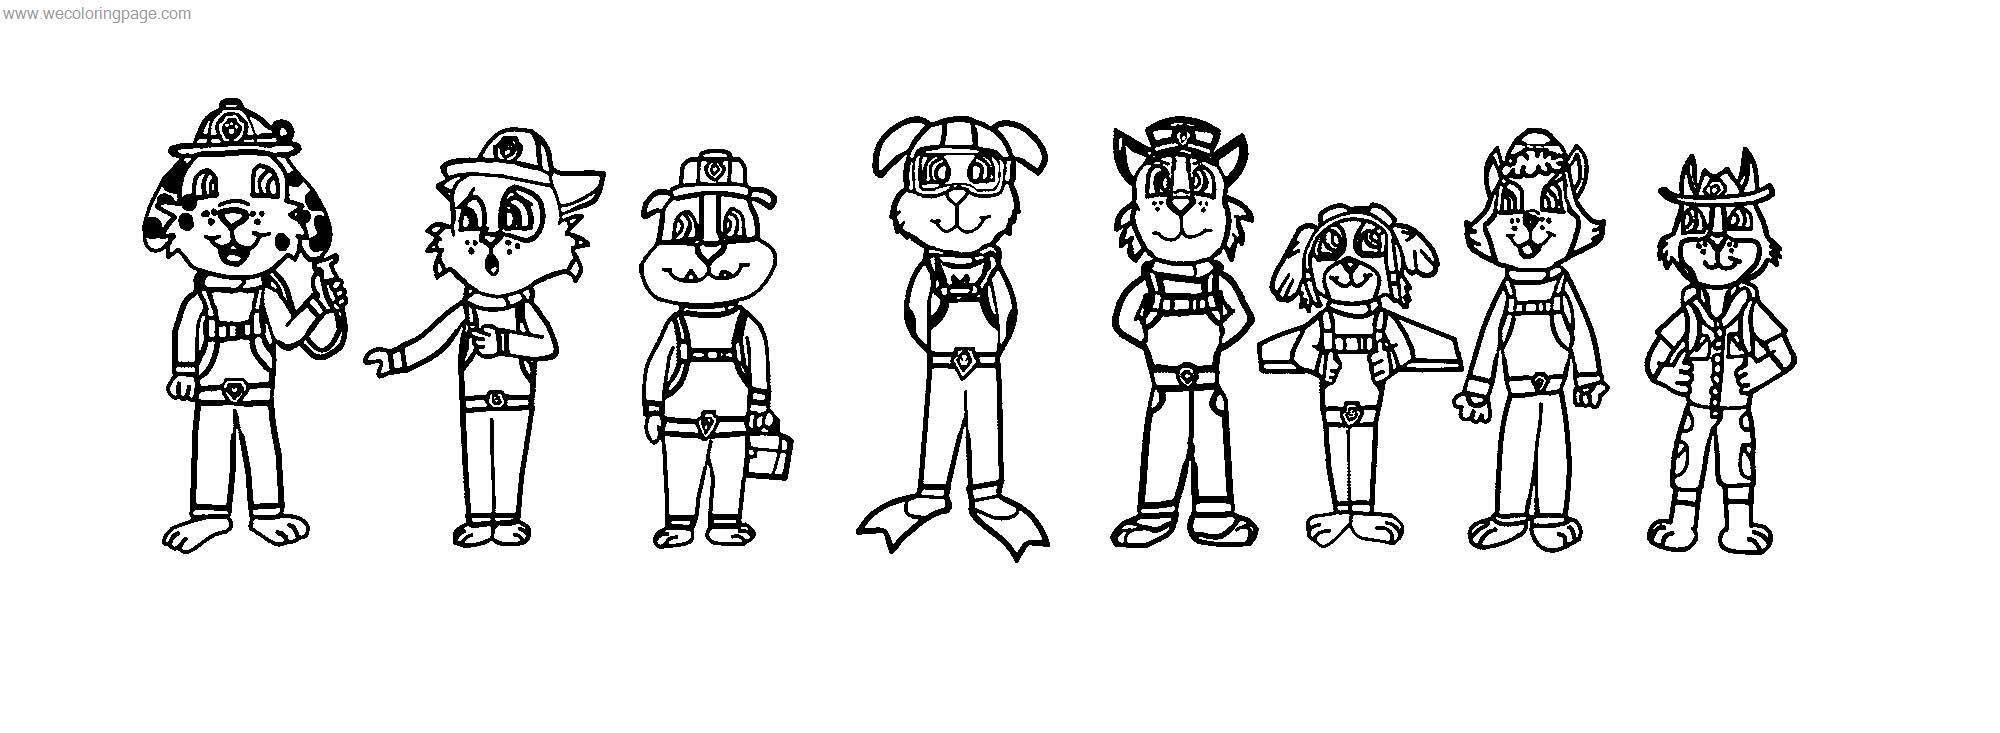 The Paw Patrol In My Style By Theevstar Dwaf Coloring Page